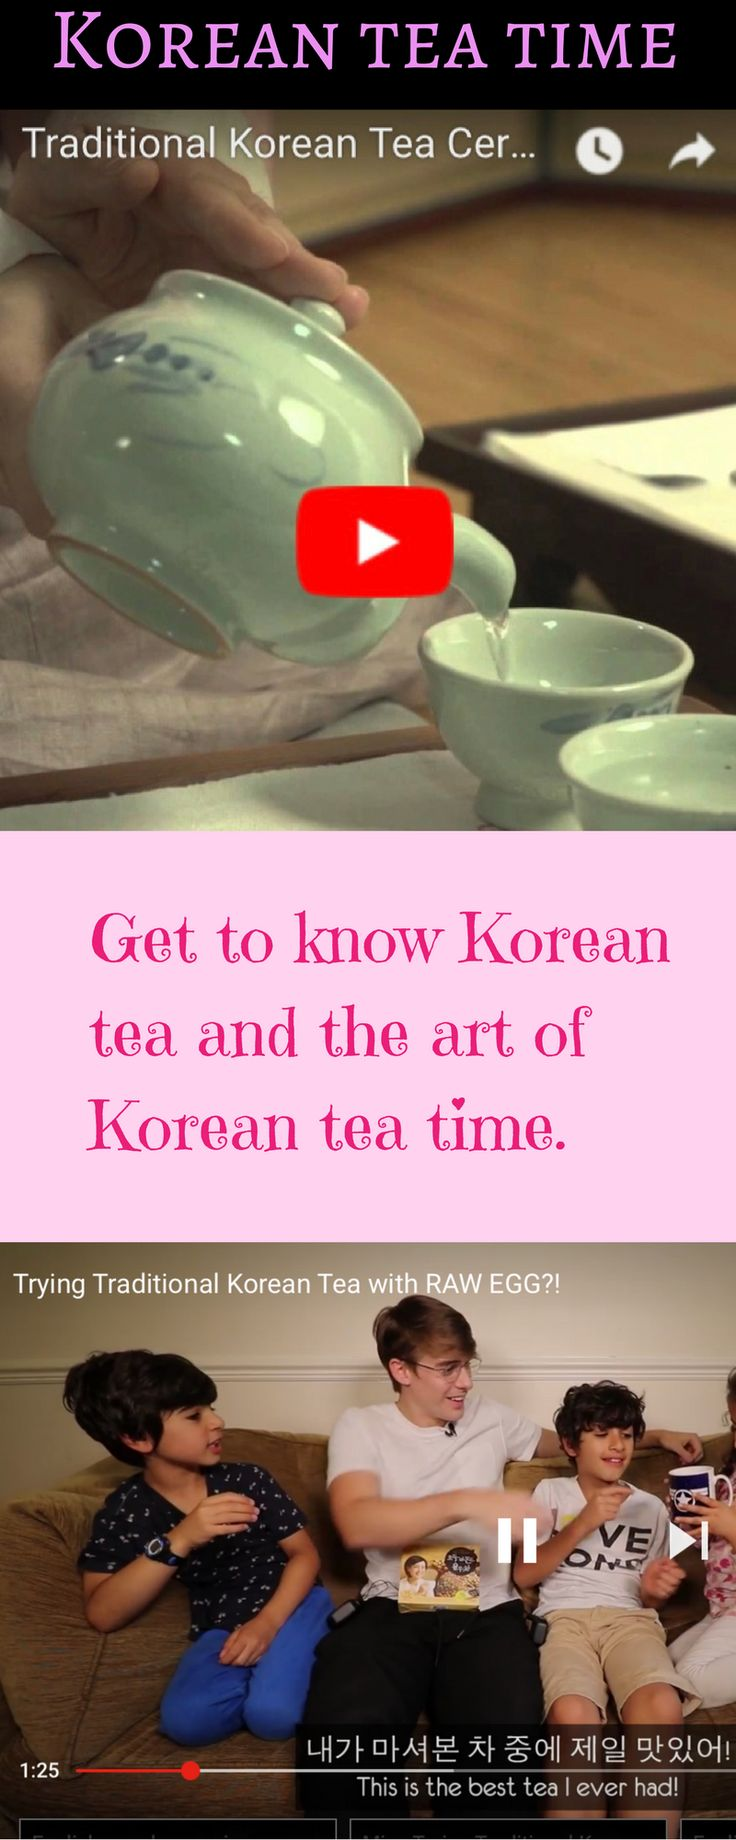 Korea is a huge tea drinking country. There are so many varieties of Korean tea. The choices are infinite. I can't go over every single one of them, but here is a list of some of my favs #ontheblog